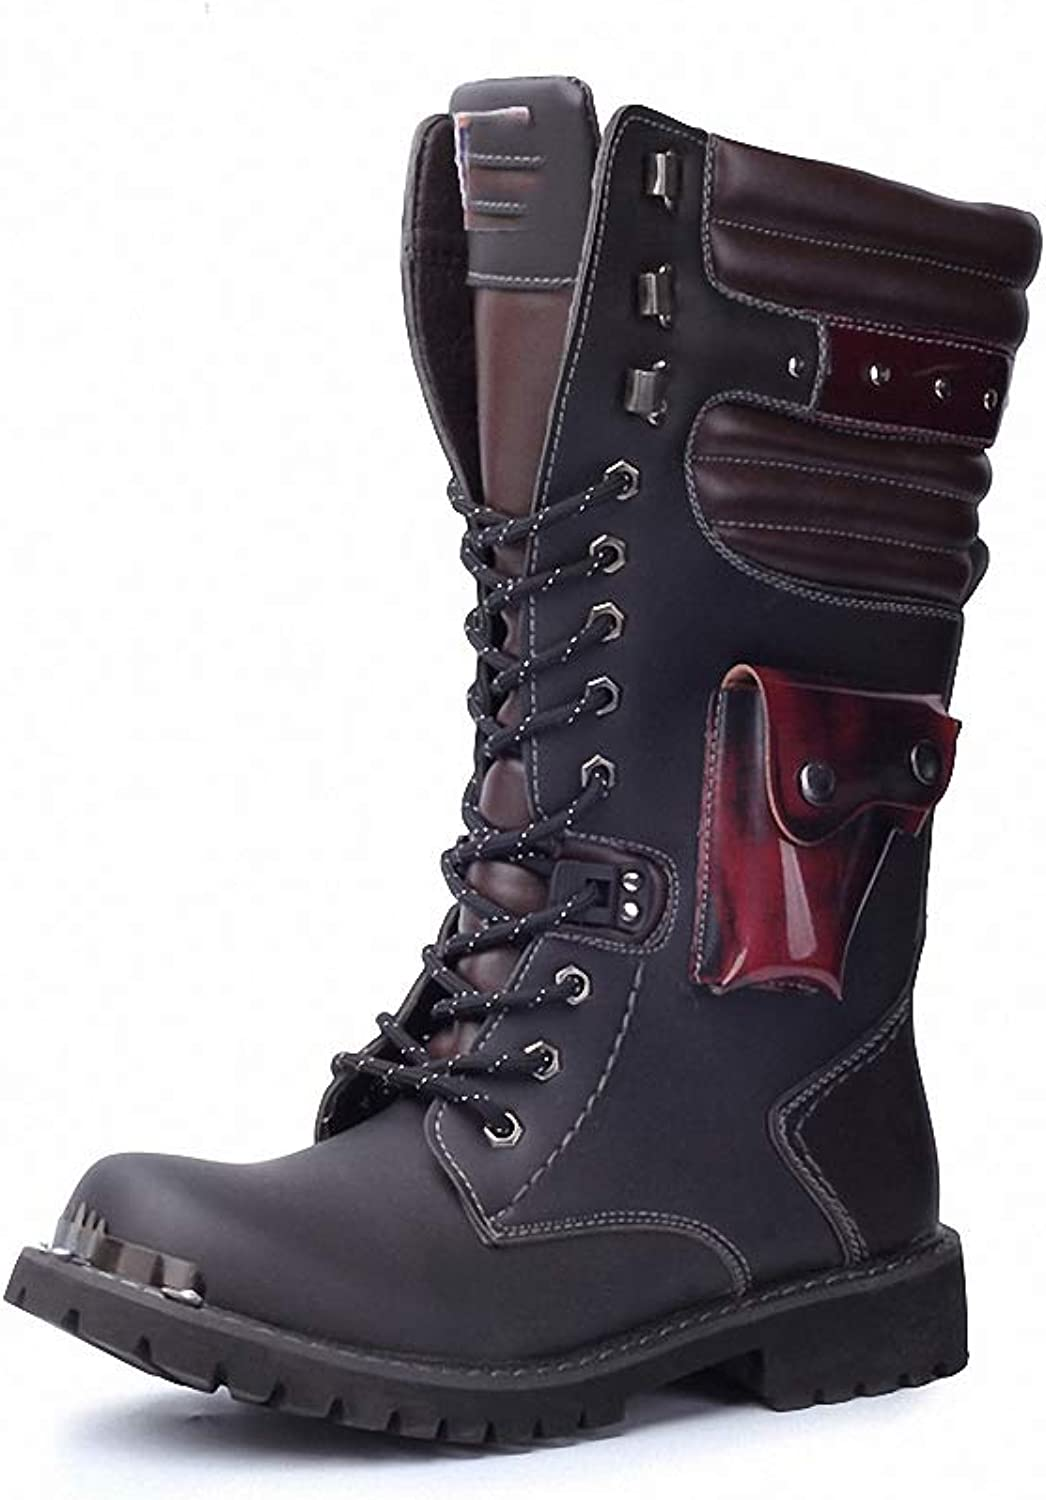 Mens Backpacking Boots Army Boots Men Bag Military Mens Boots Skull Metal Buckle Lace up Male Motorcycle Punk Boots Men's shoes Rock